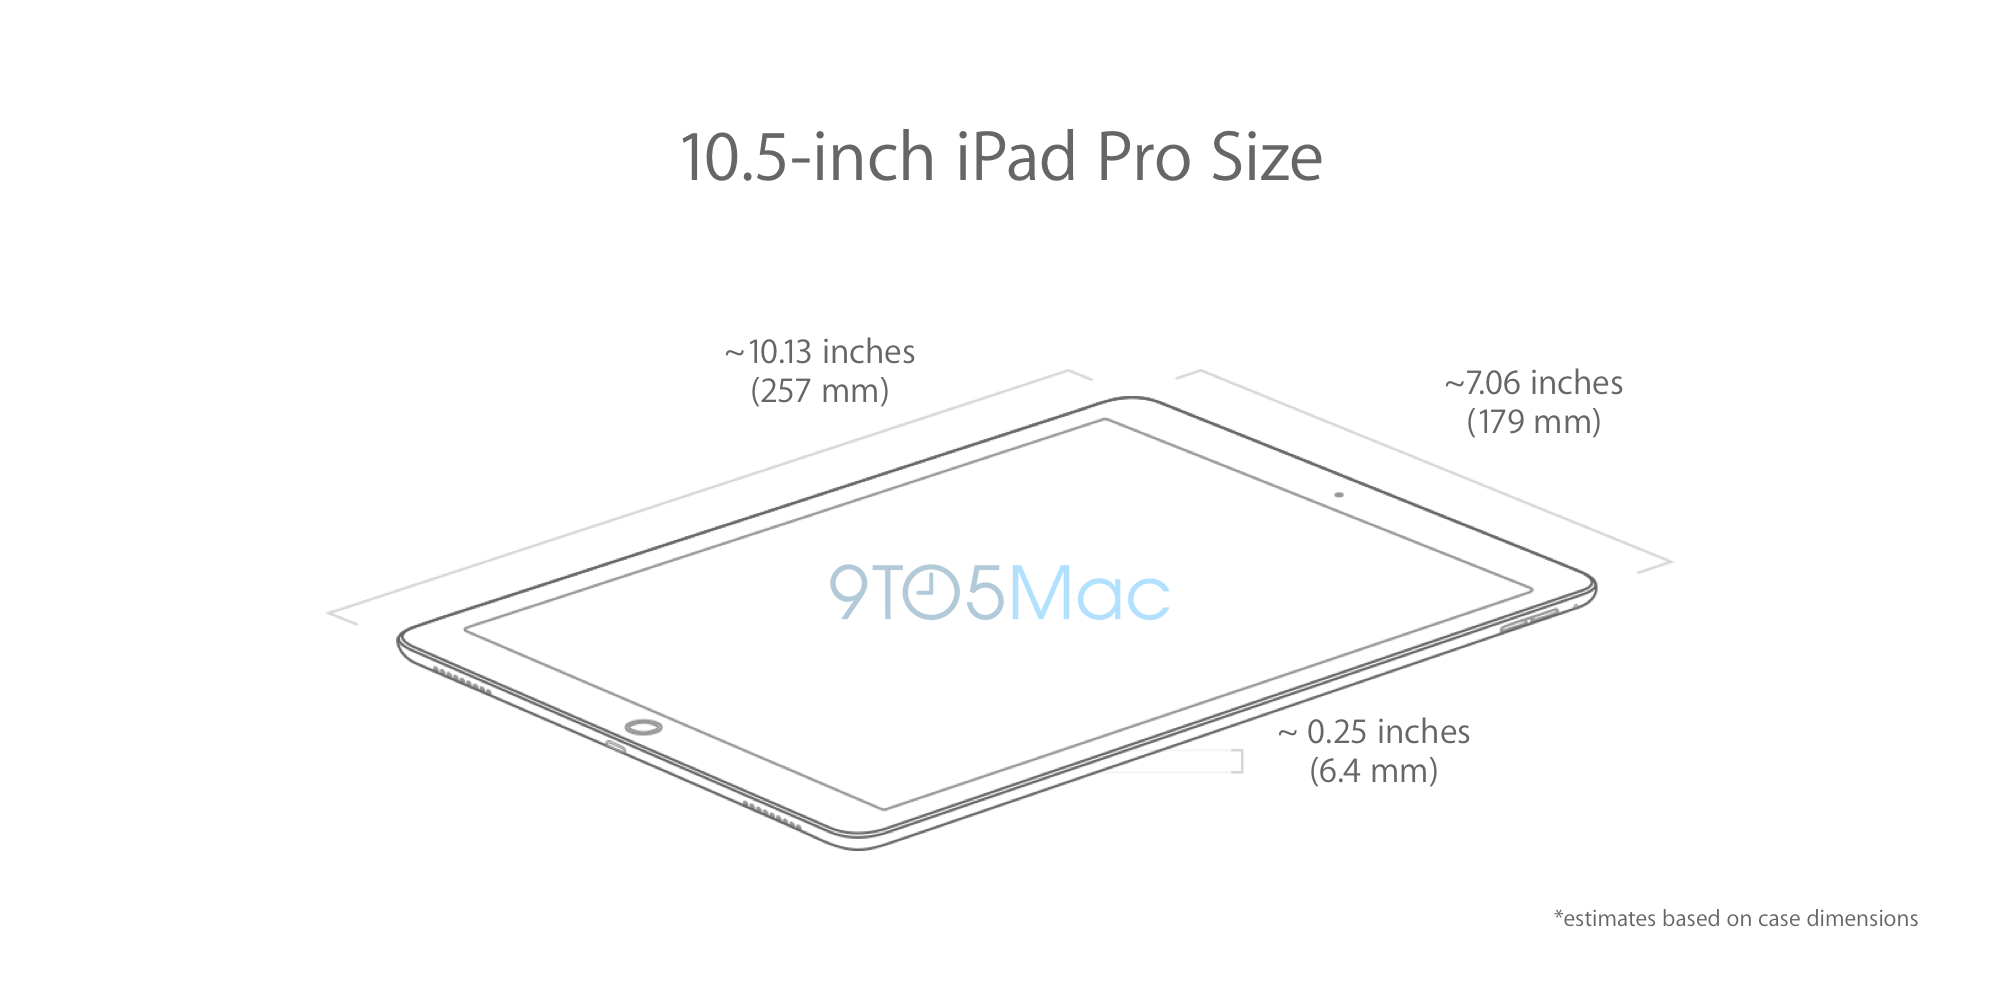 hands on with a 10 5 inch ipad pro case and dimension details 9to5mac